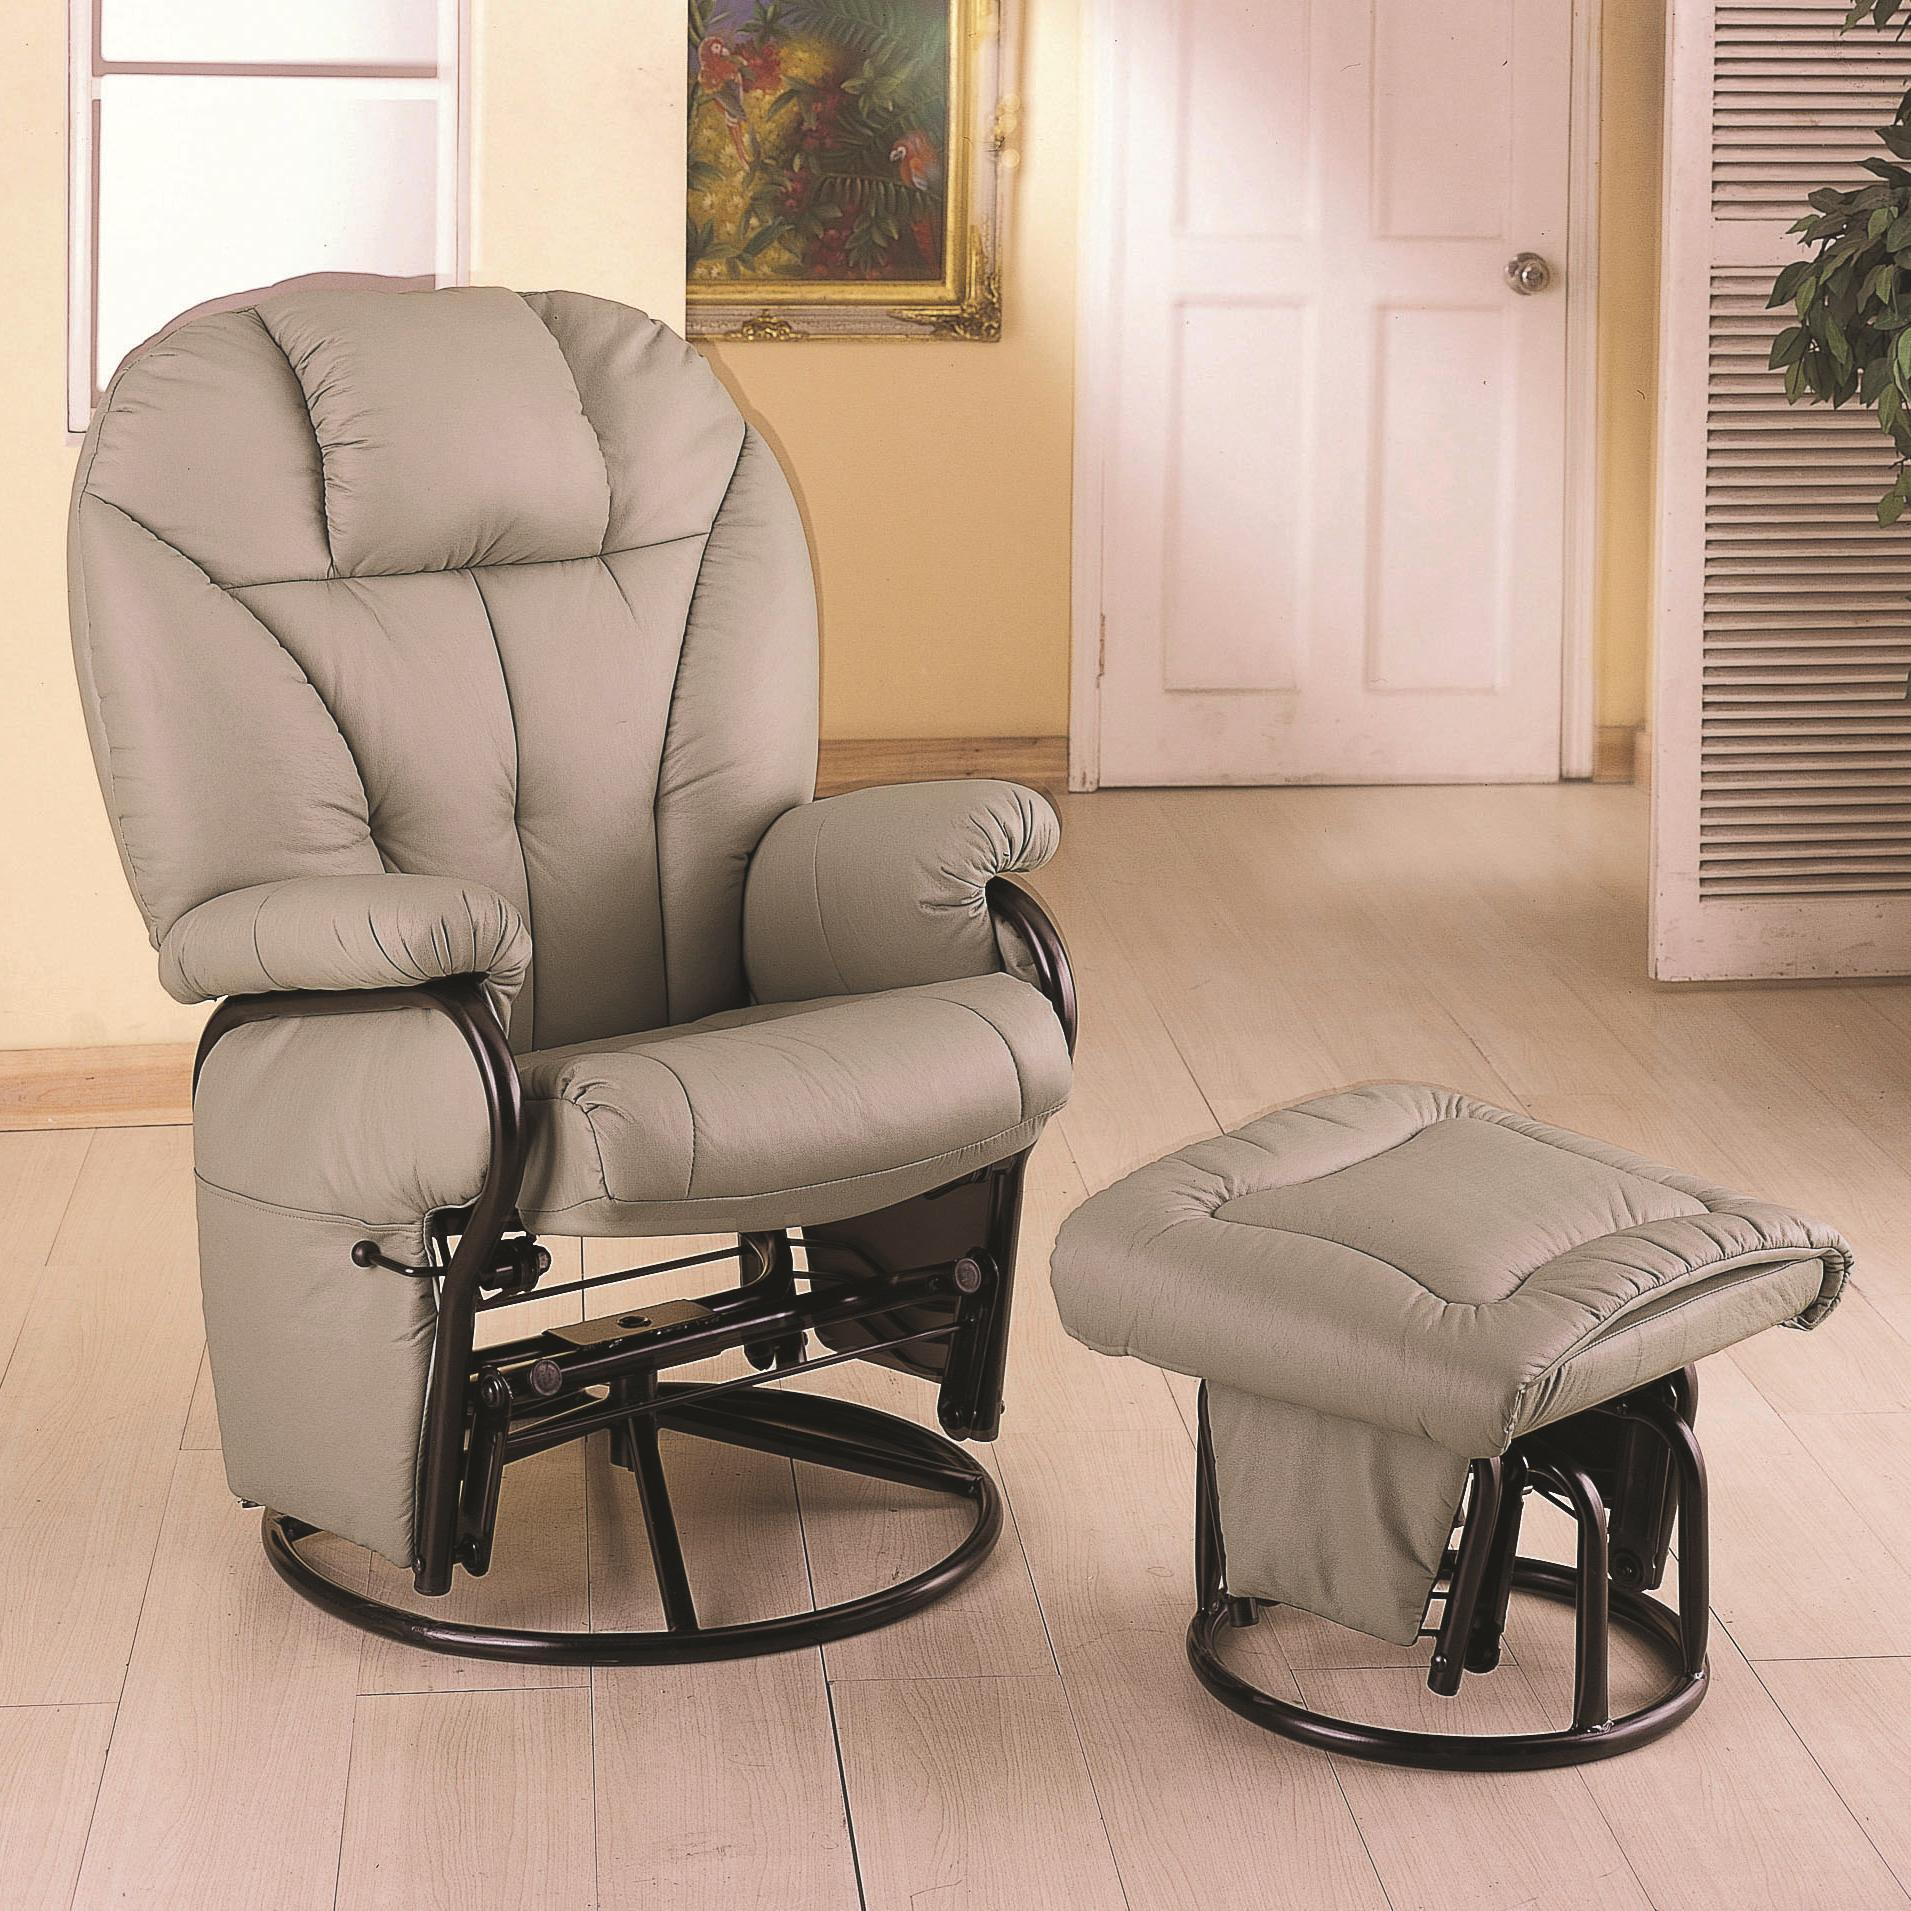 Leatherette Recliner with Matching Ottoman-Color:Bone